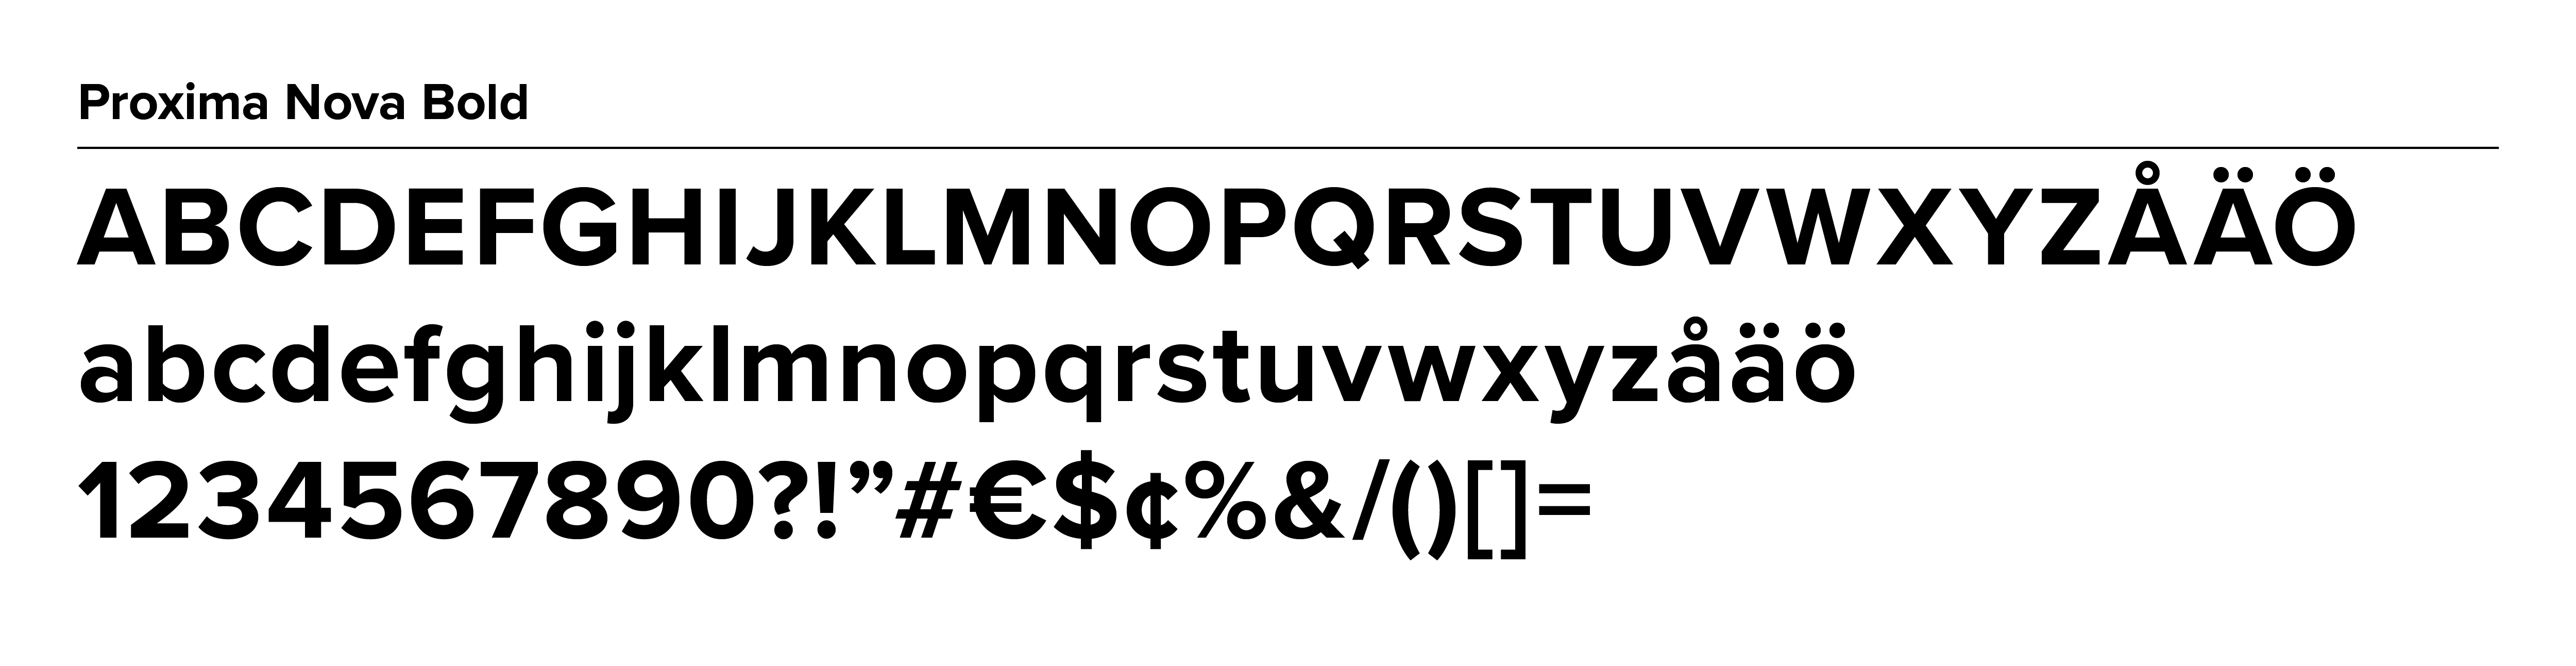 deBroome's primary font in bold with a weight of 700